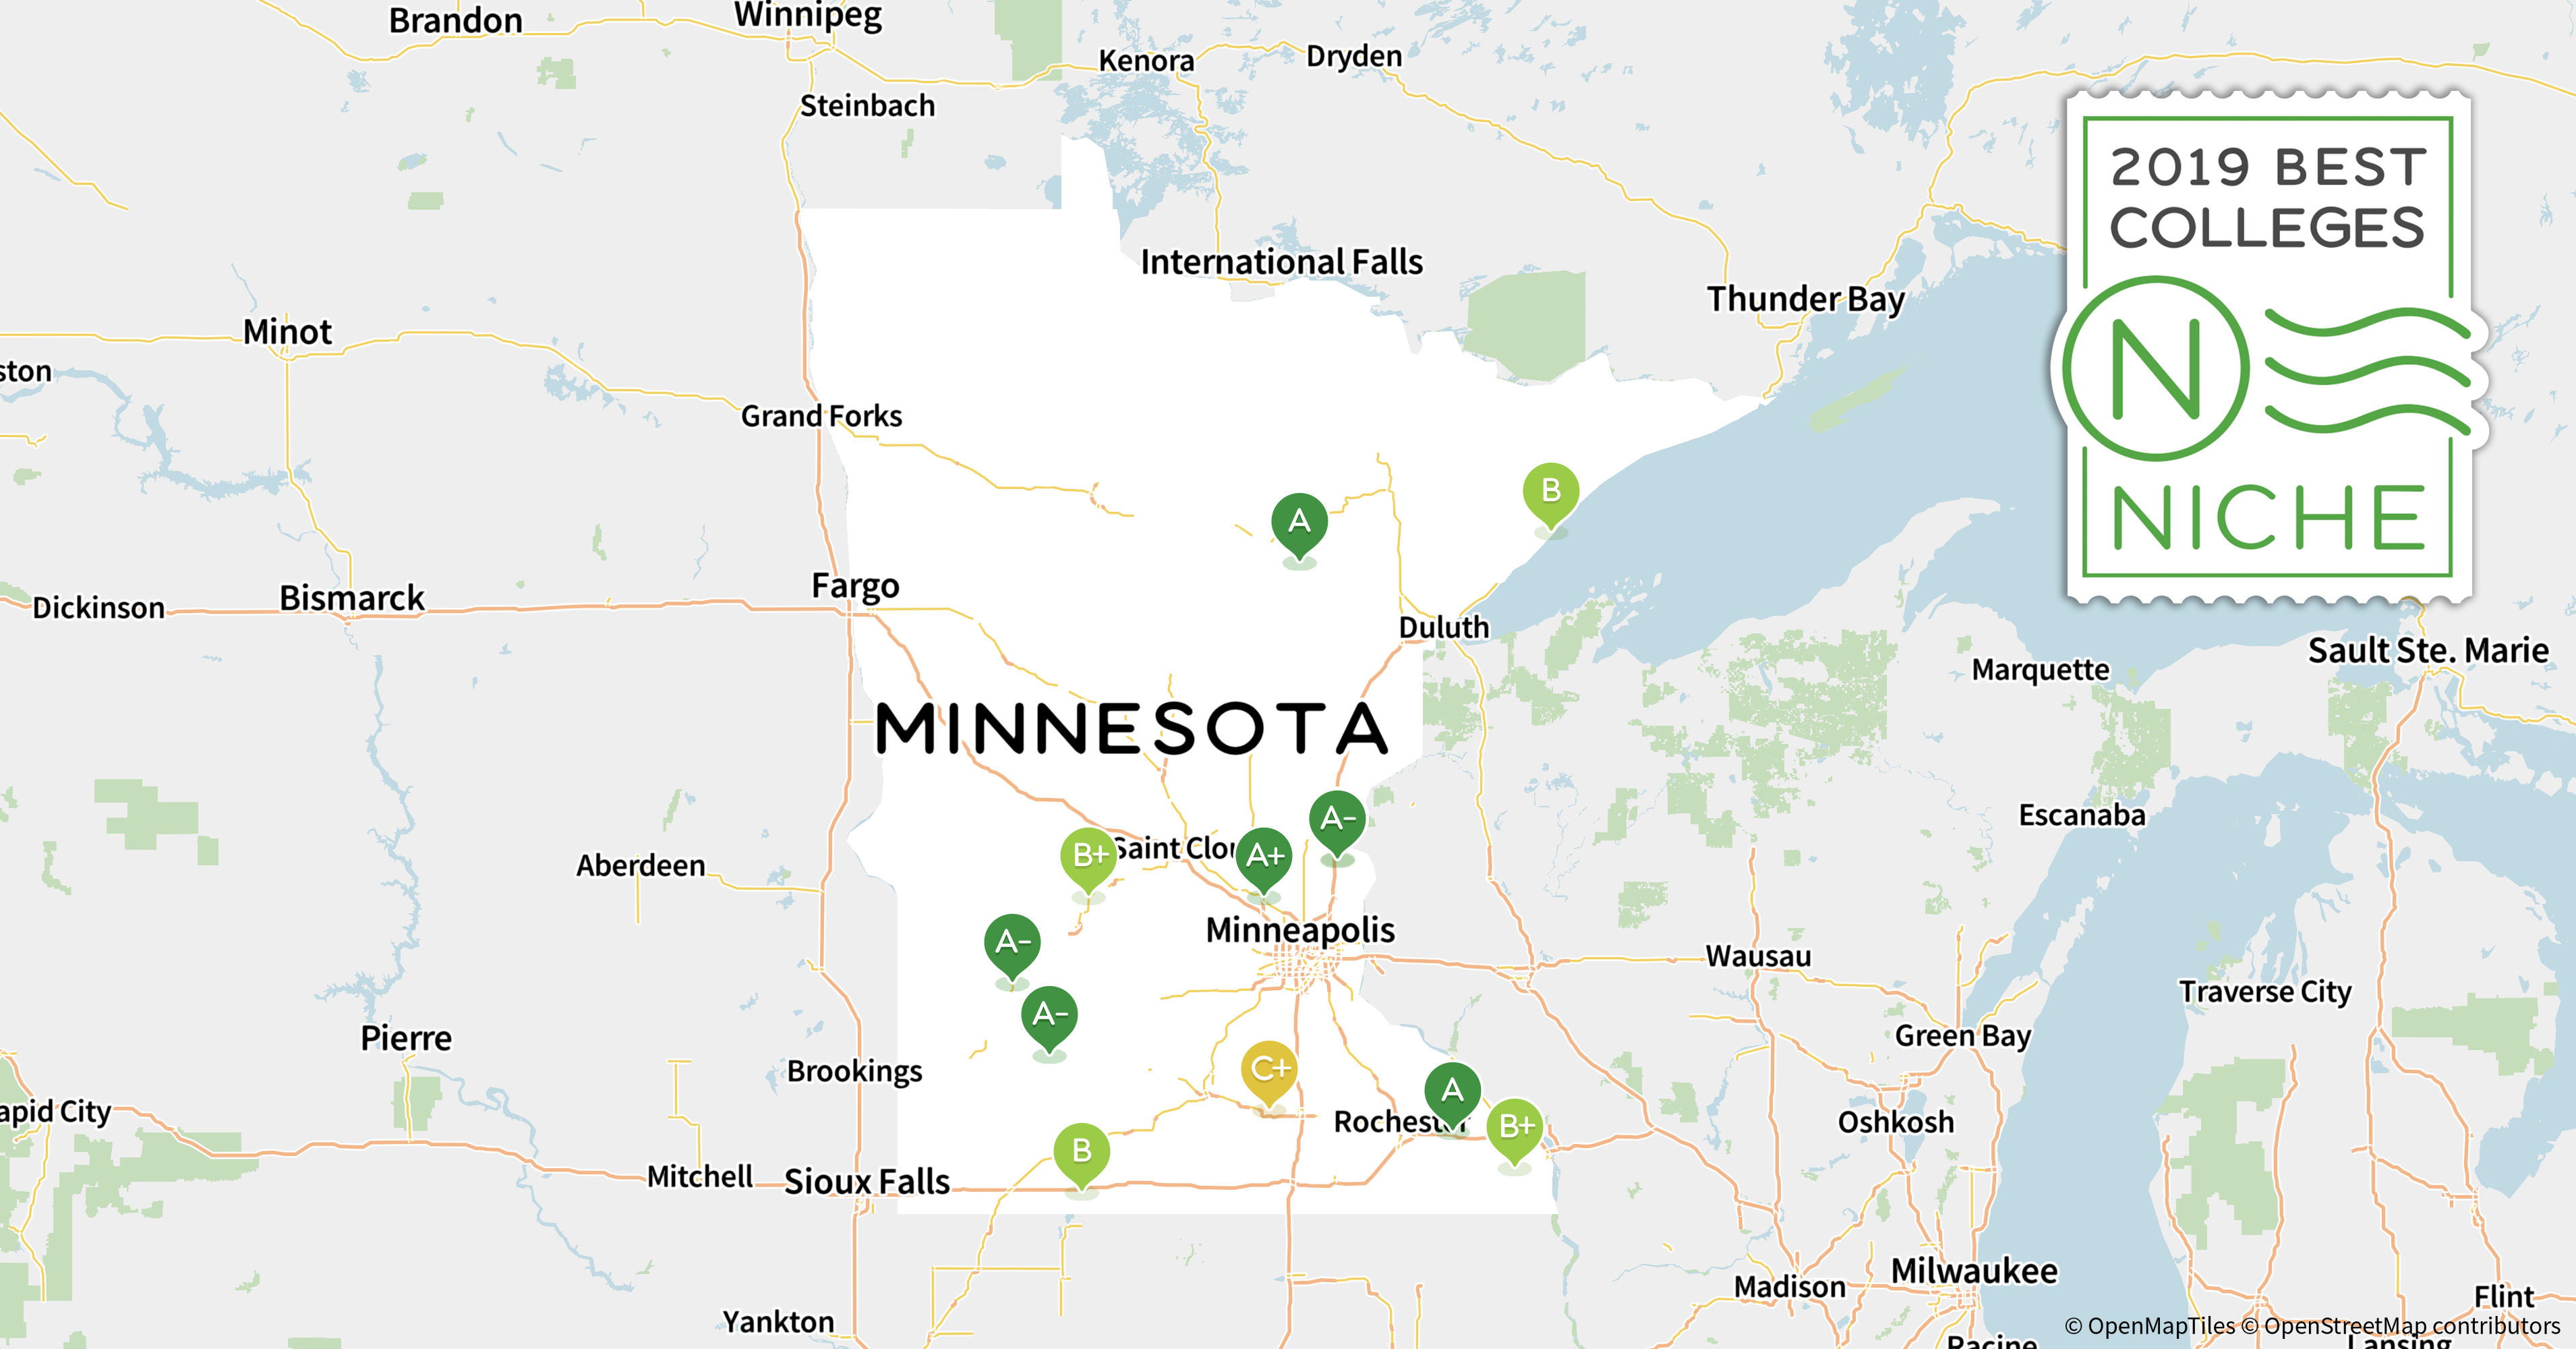 2019 Best Colleges In Minnesota Niche